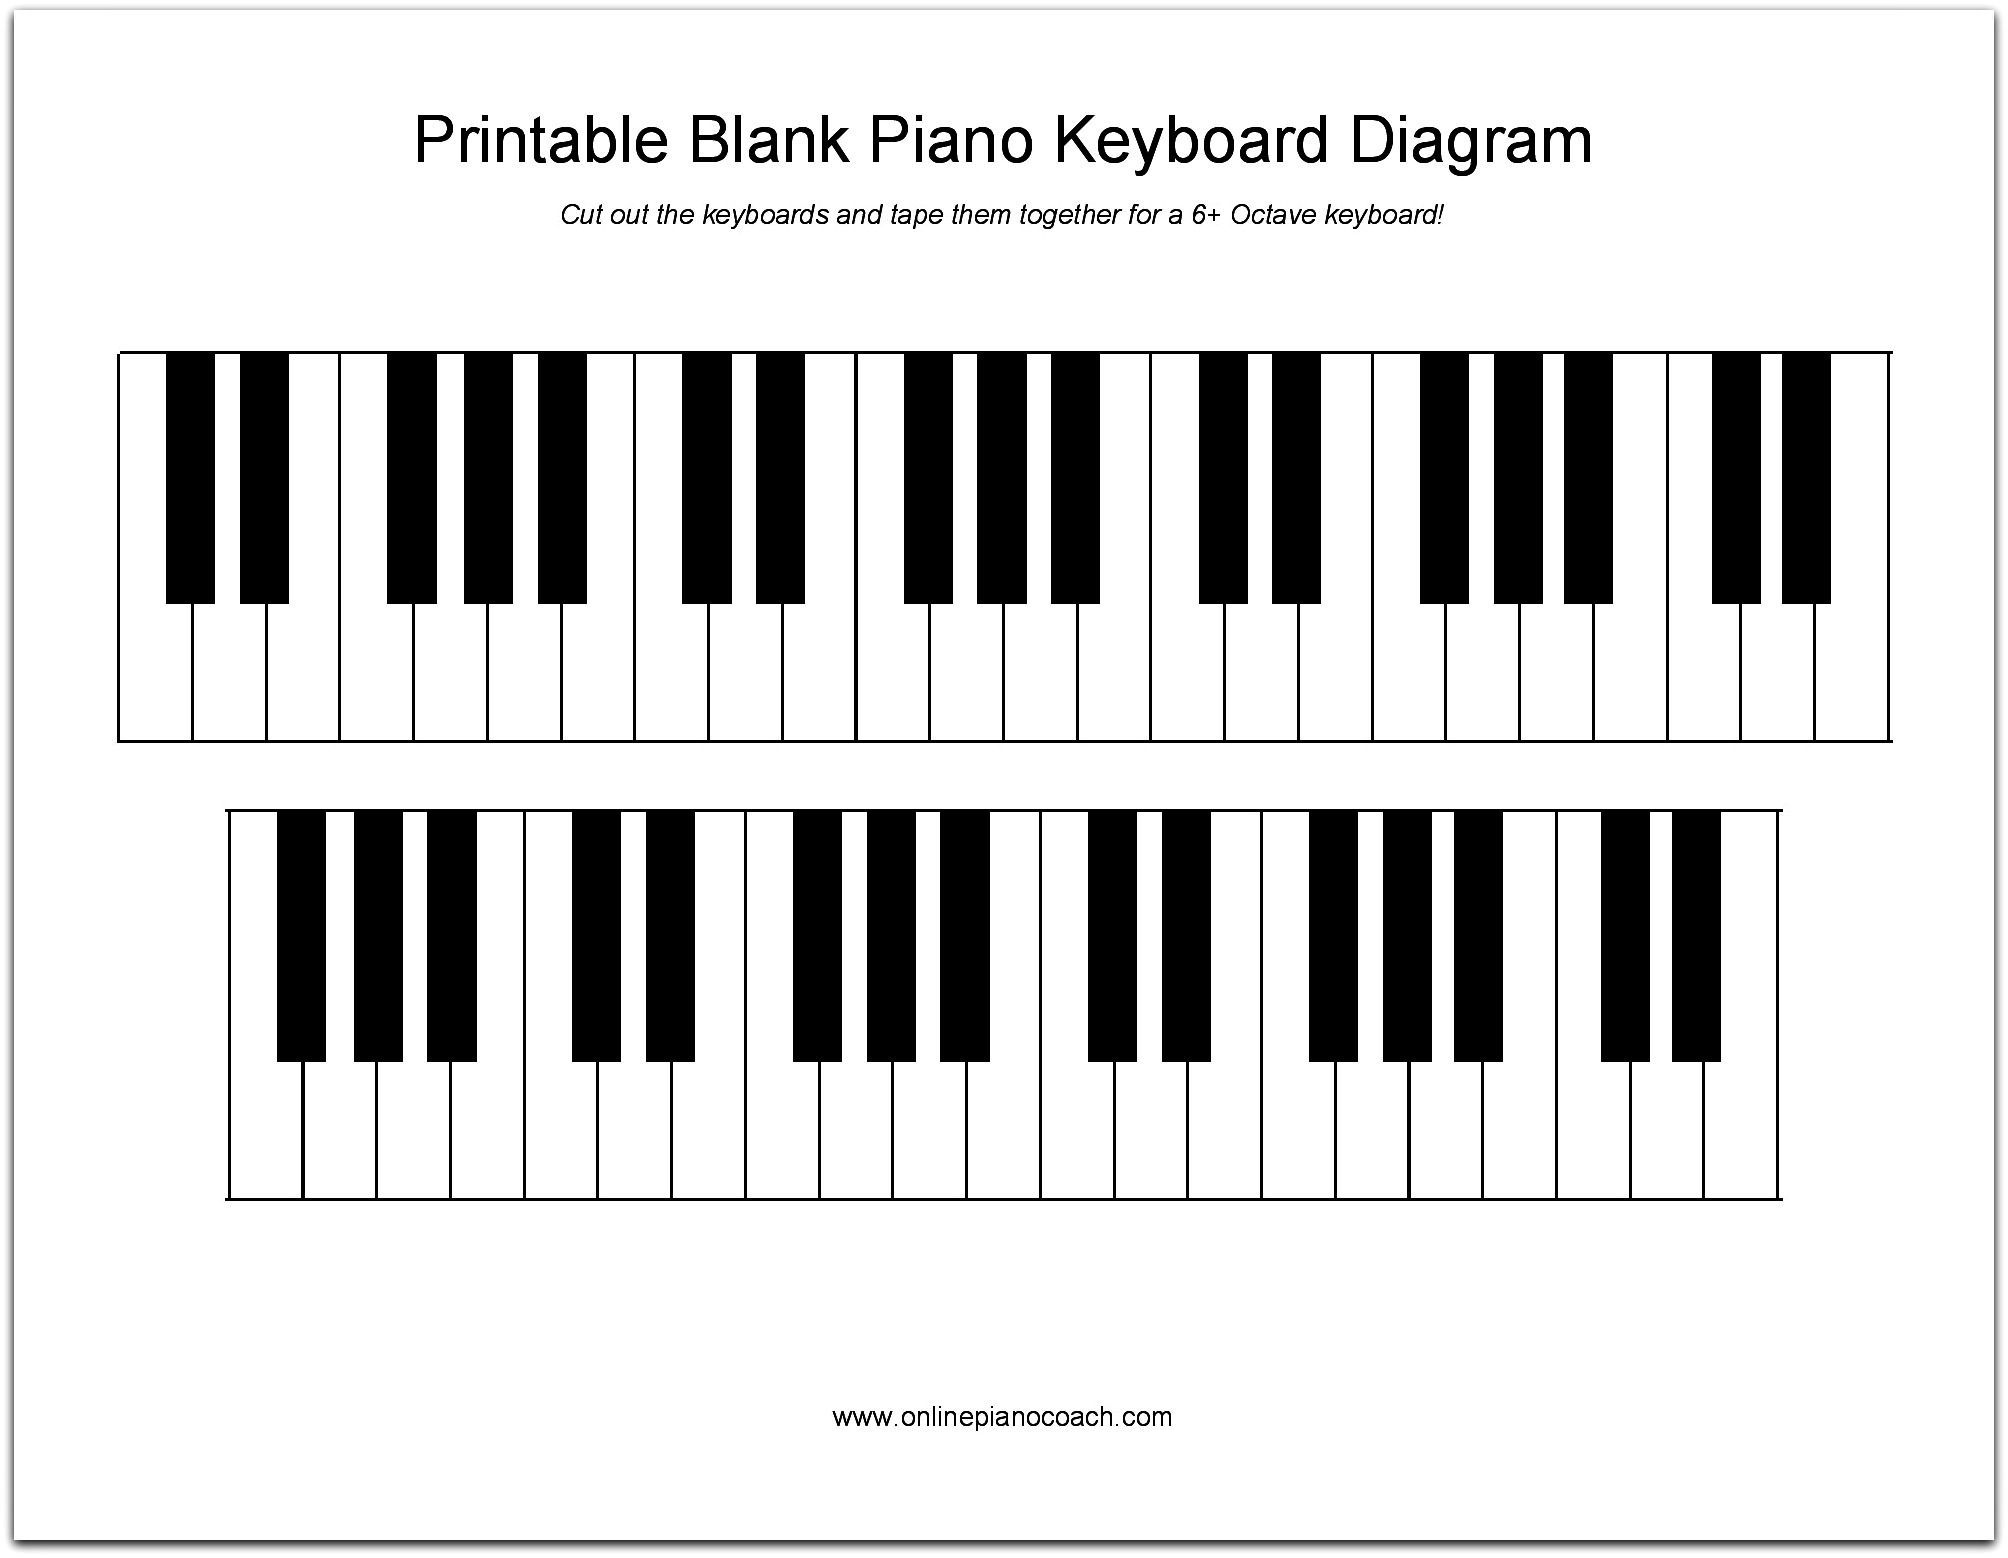 photograph relating to Printable Piano Keyboard called Diagram Of Piano - 2017 11 07 venn diagram coloration within just my piano